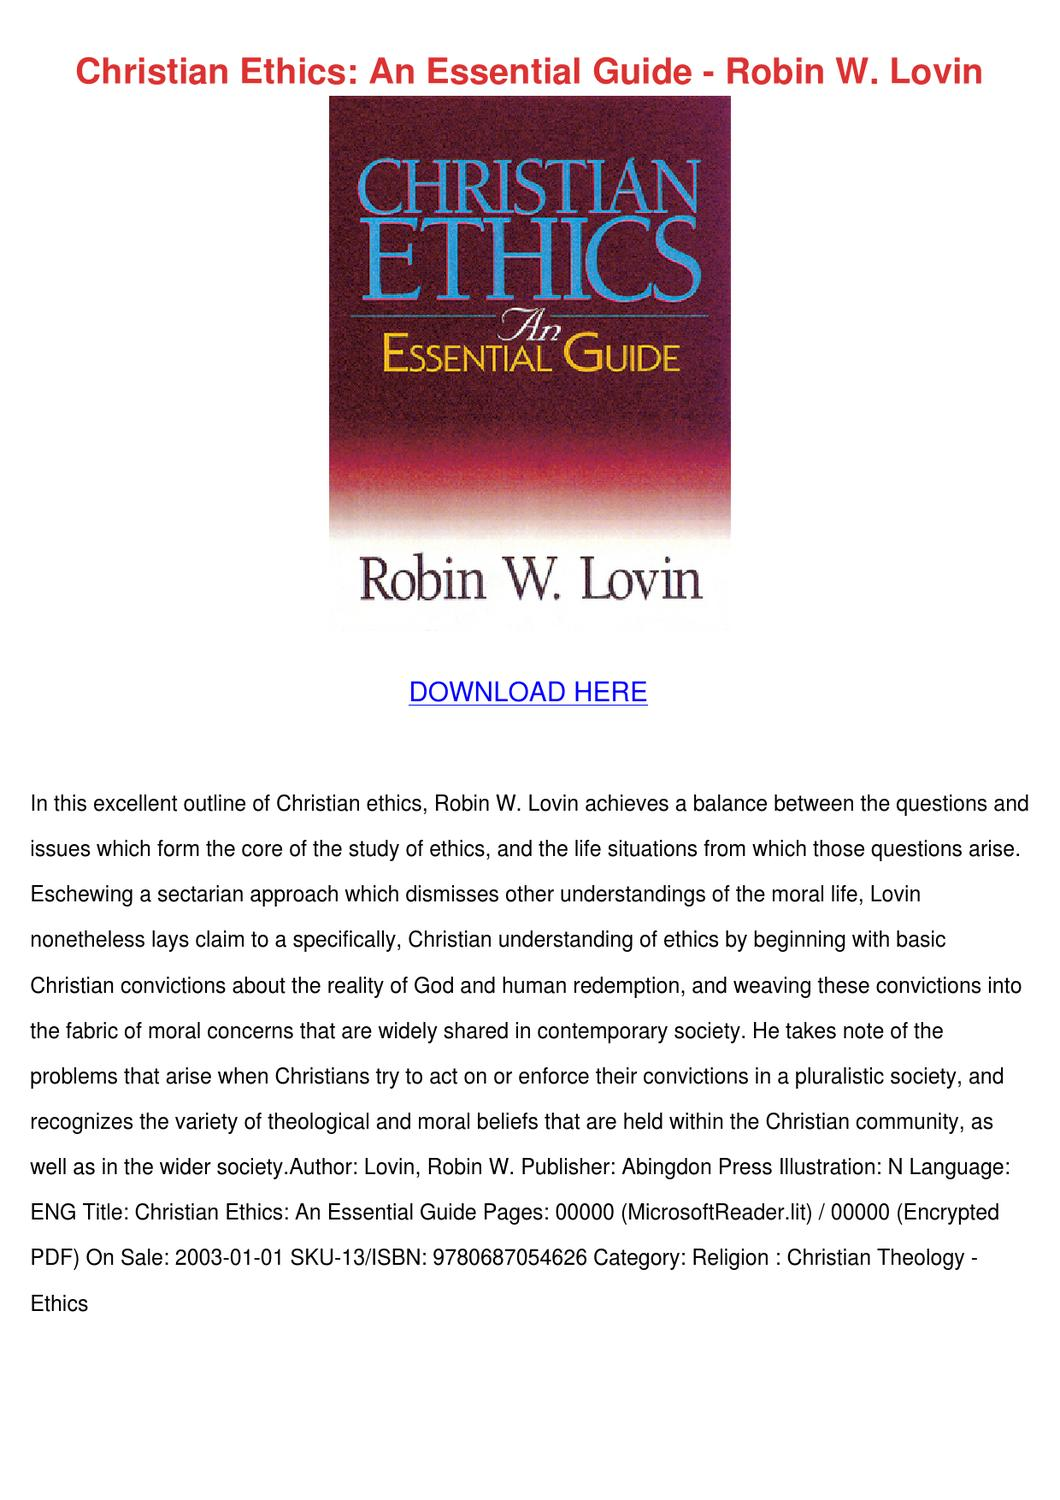 robin lovin christian ethics Reinhold niebuhr and the shortage of prophets nowadays (robin lovin) an interpretation of christian ethics and the shortage of prophets nowadays (robin.